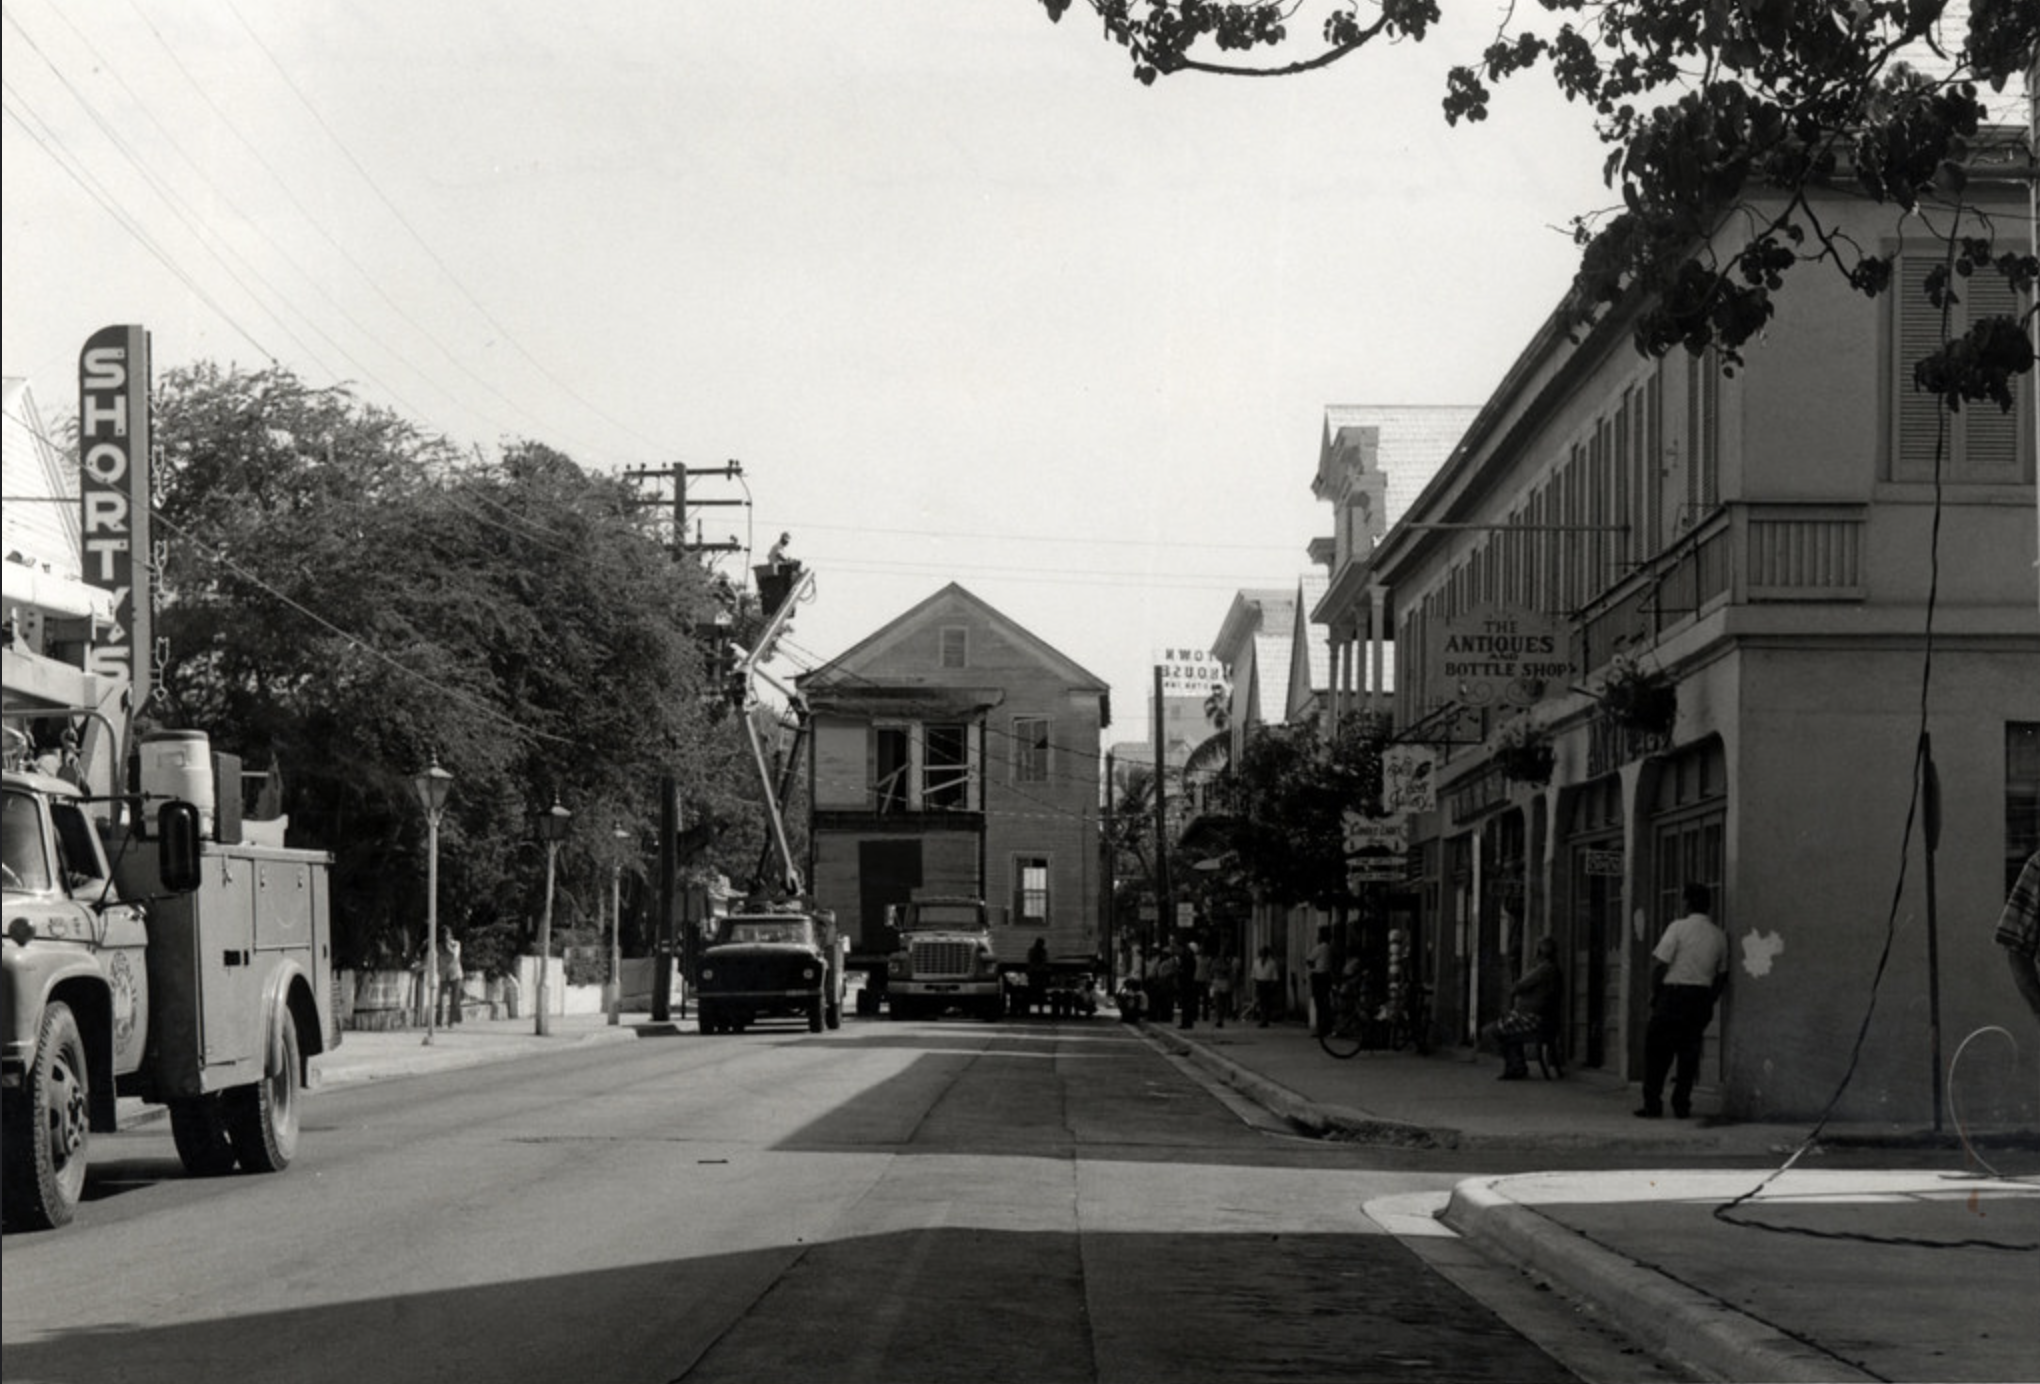 The 200 block of Duval Street with the house from 716 Fleming Street (where Library Garden now located) being moved to 115 Duval Street (Bagatelle Restaurant) in 1974. Photo from the Ida Woodward Barron Collection. Florida Keys Public Libraries.